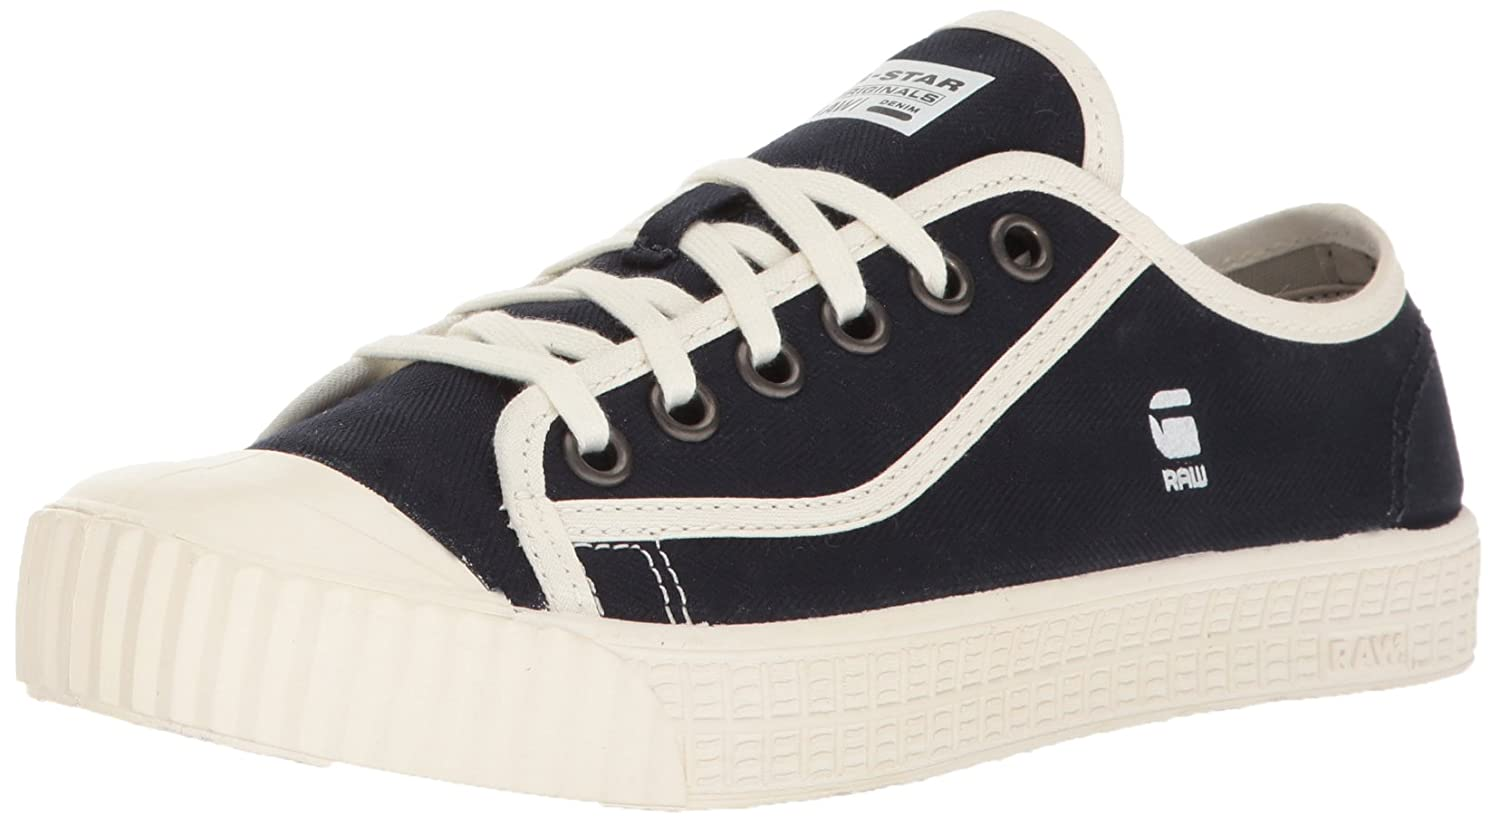 TALLA 42 EU. G-STAR RAW Rovulc Denim Low Sneakers, Zapatillas para Hombre